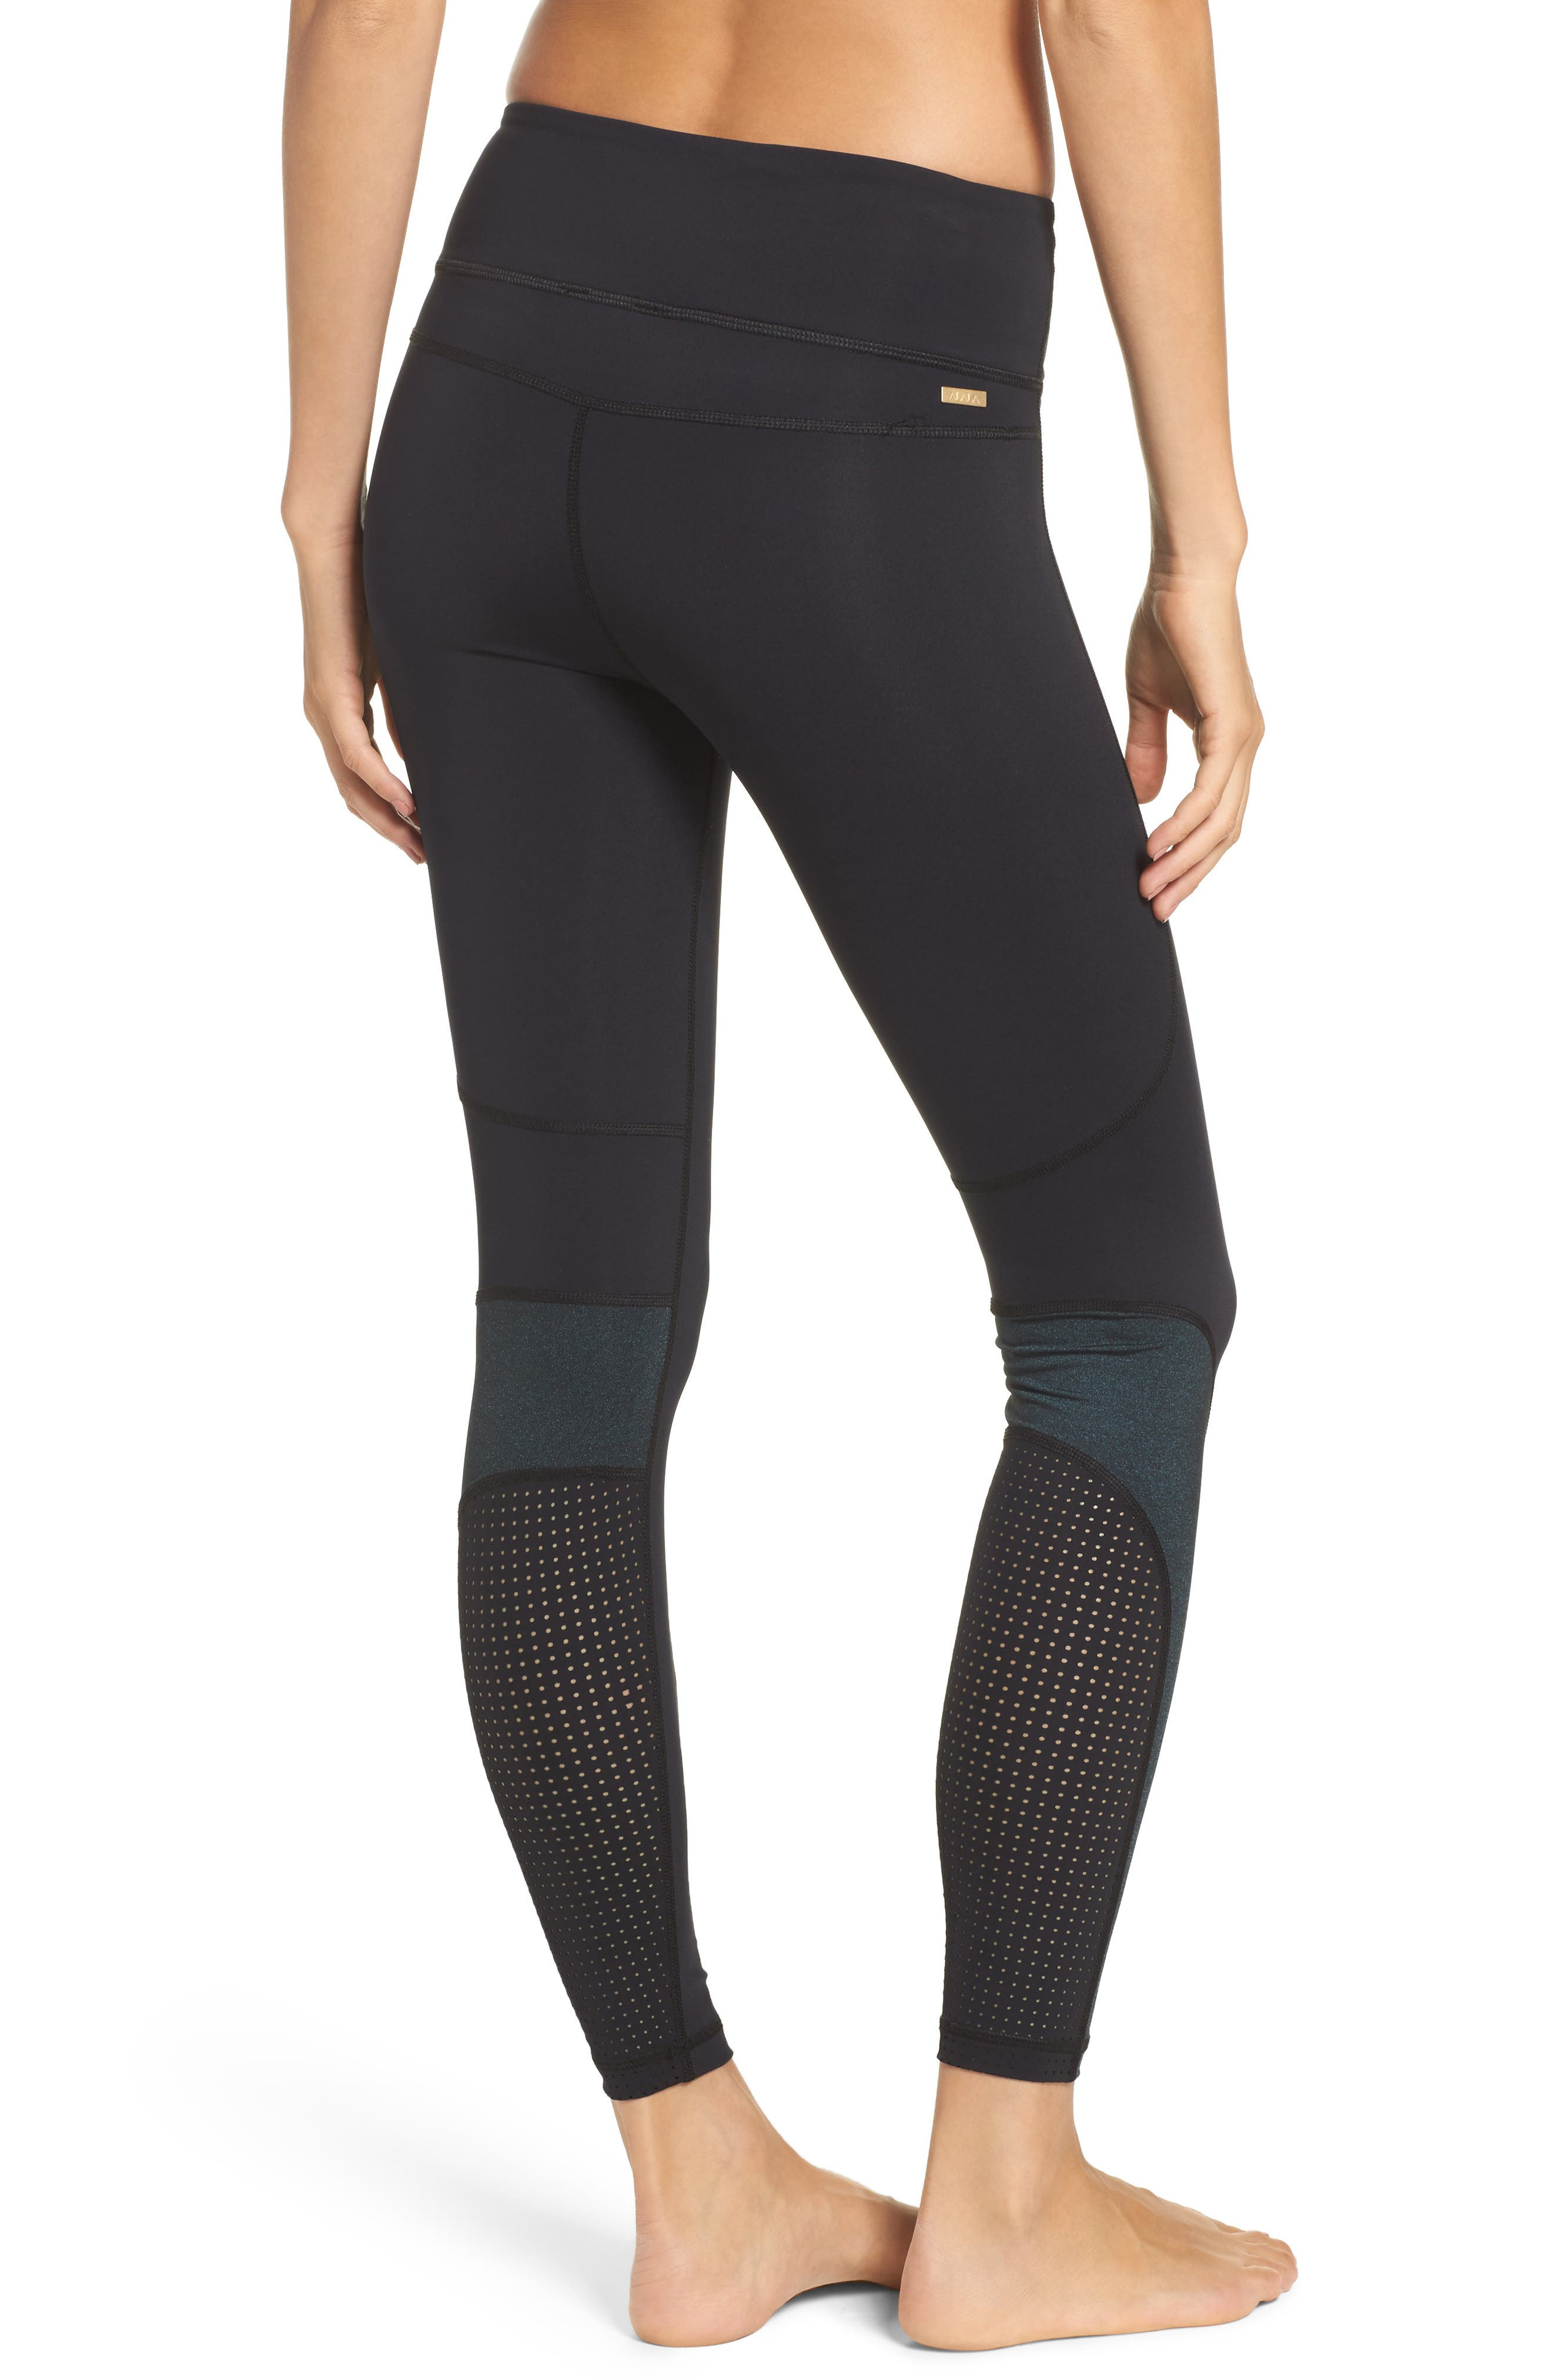 Siren Performance Tights,                             Alternate thumbnail 2, color,                             002